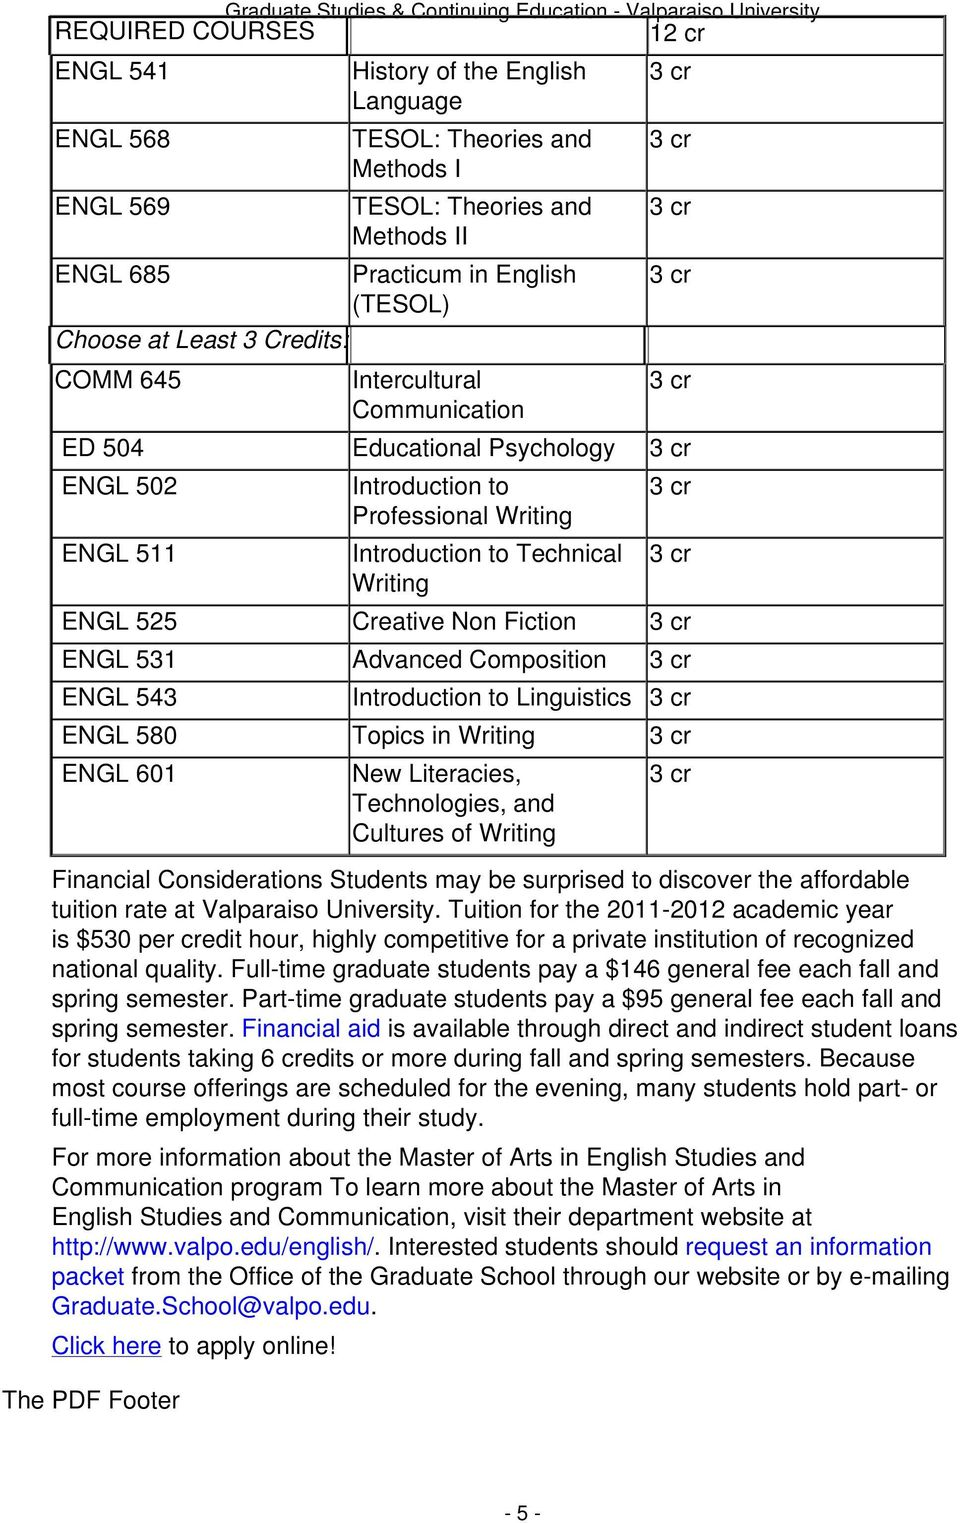 Composition ENGL 543 Introduction to Linguistics ENGL 580 Topics in ENGL 601 New Literacies, Technologies, and Cultures of Financial Considerations Students may be surprised to discover the